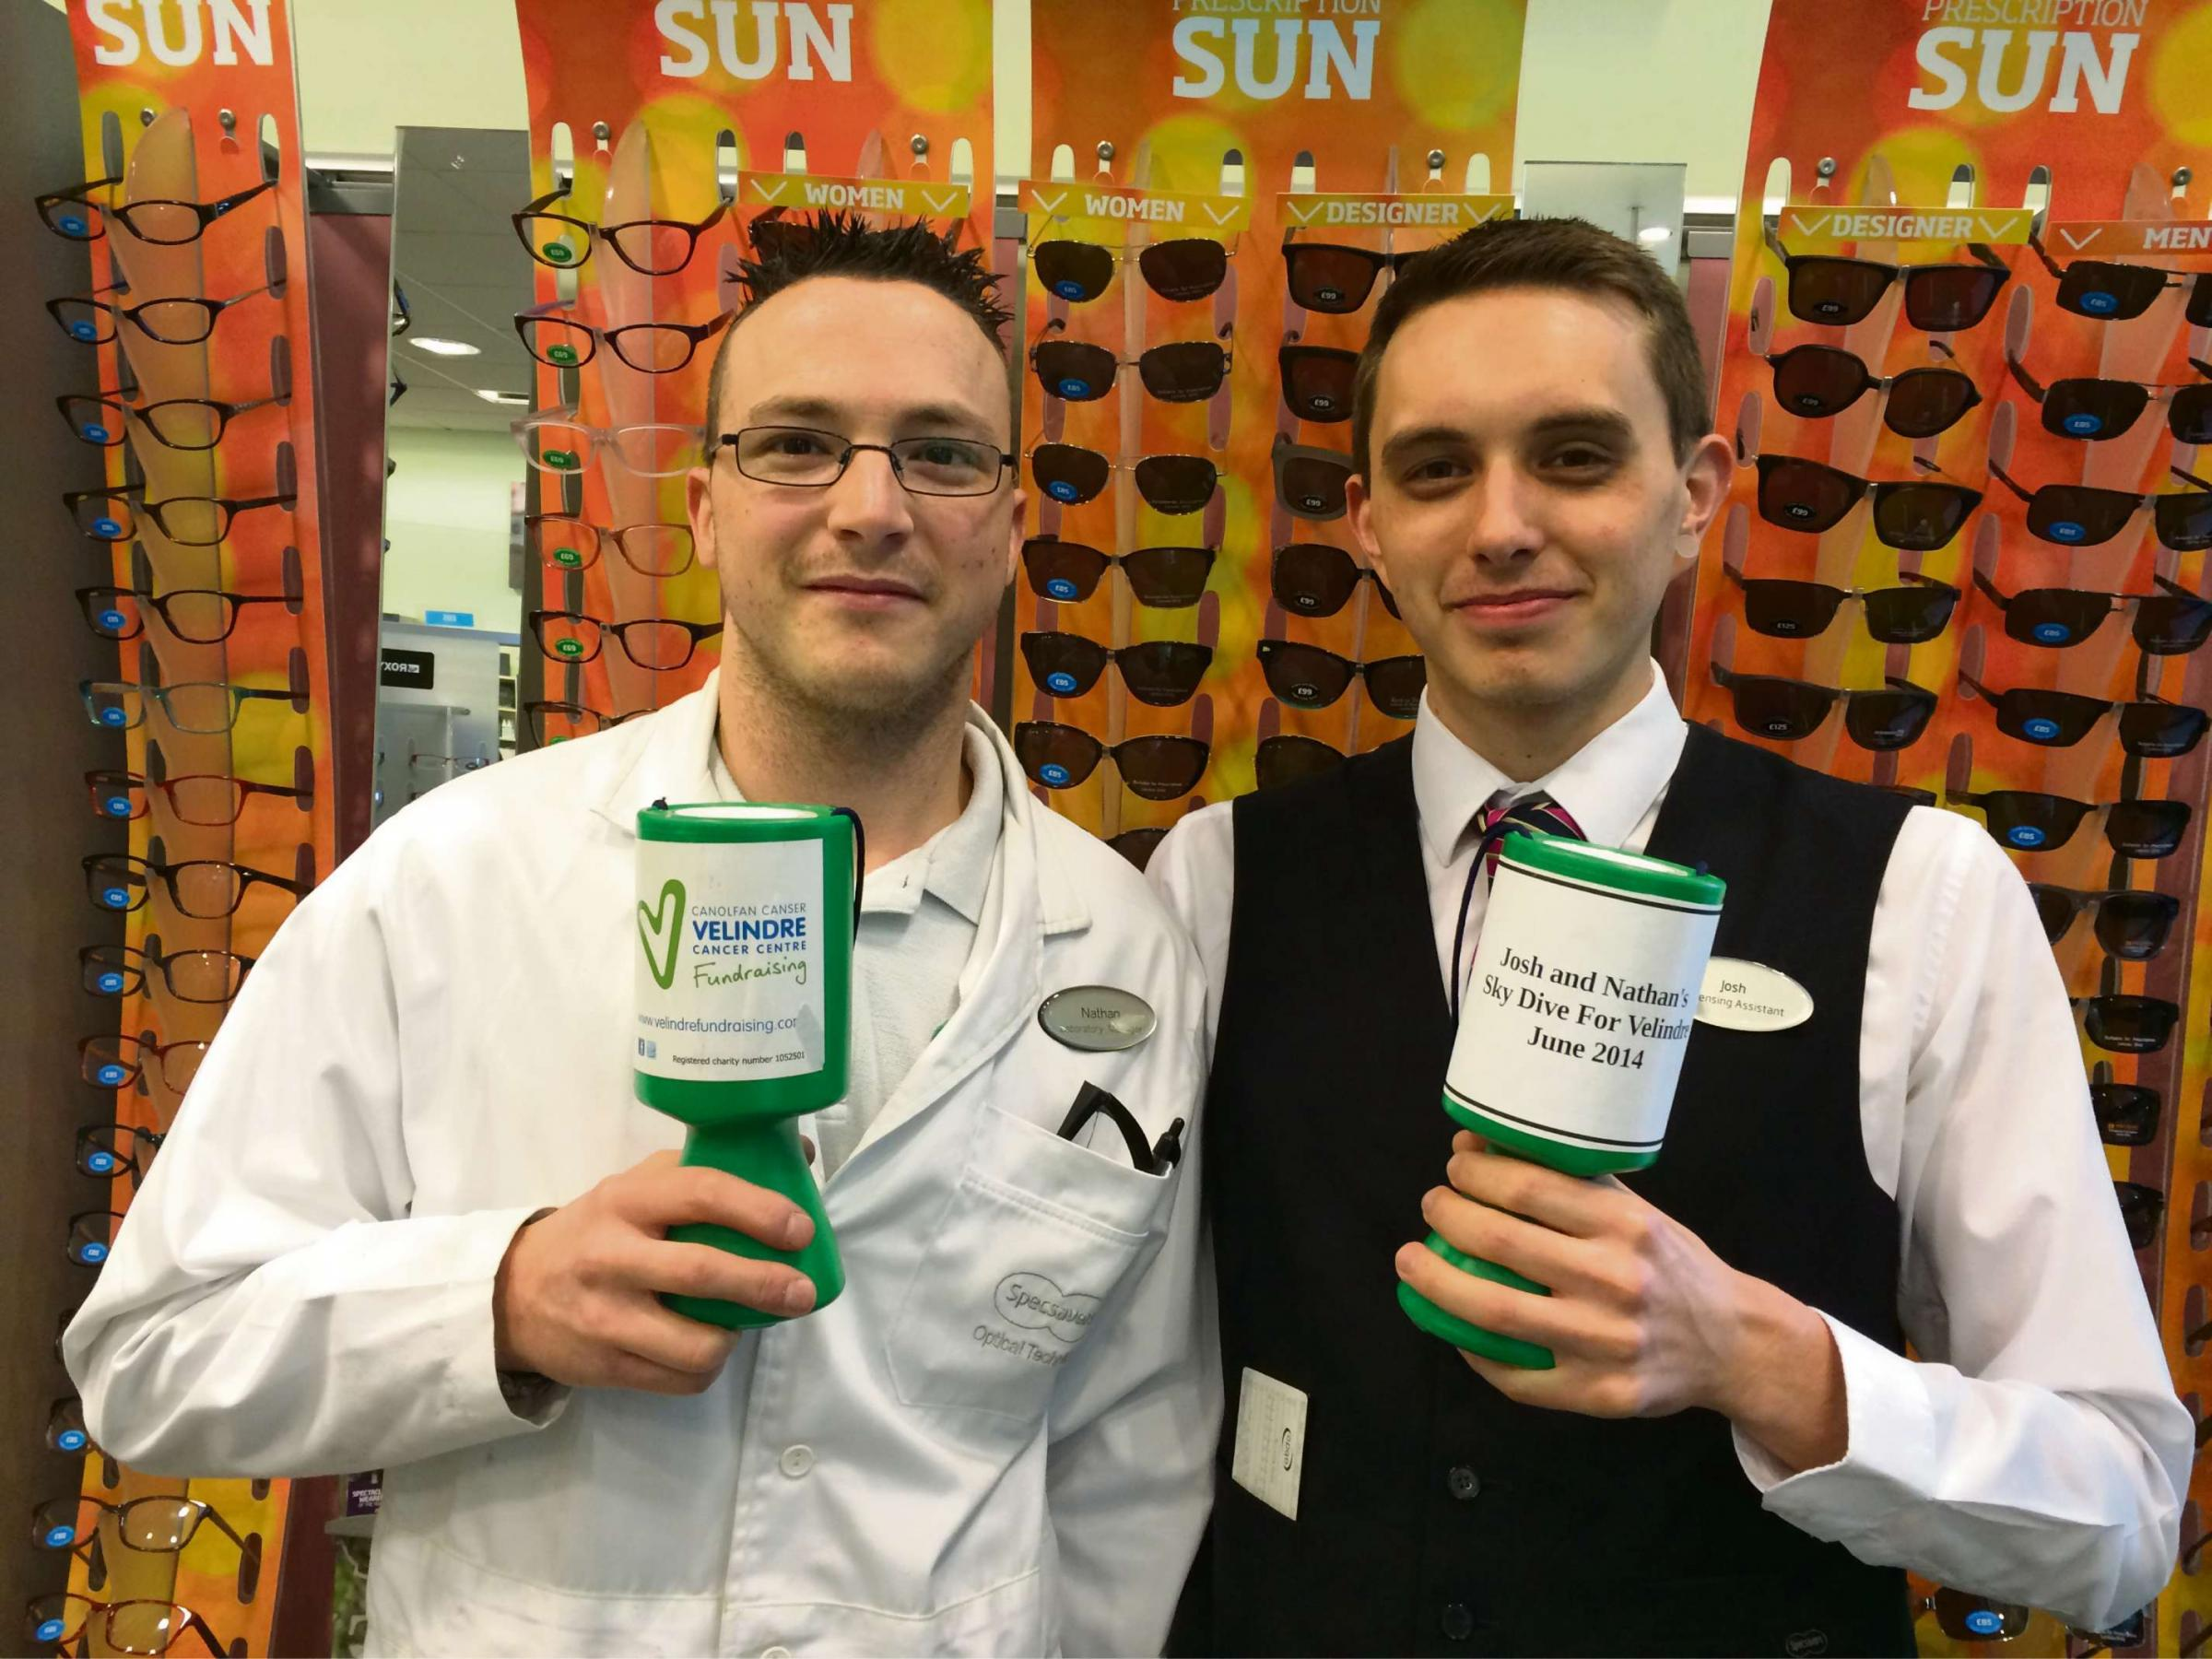 Specsavers staff members, Nathan Meehan and Josh Double.